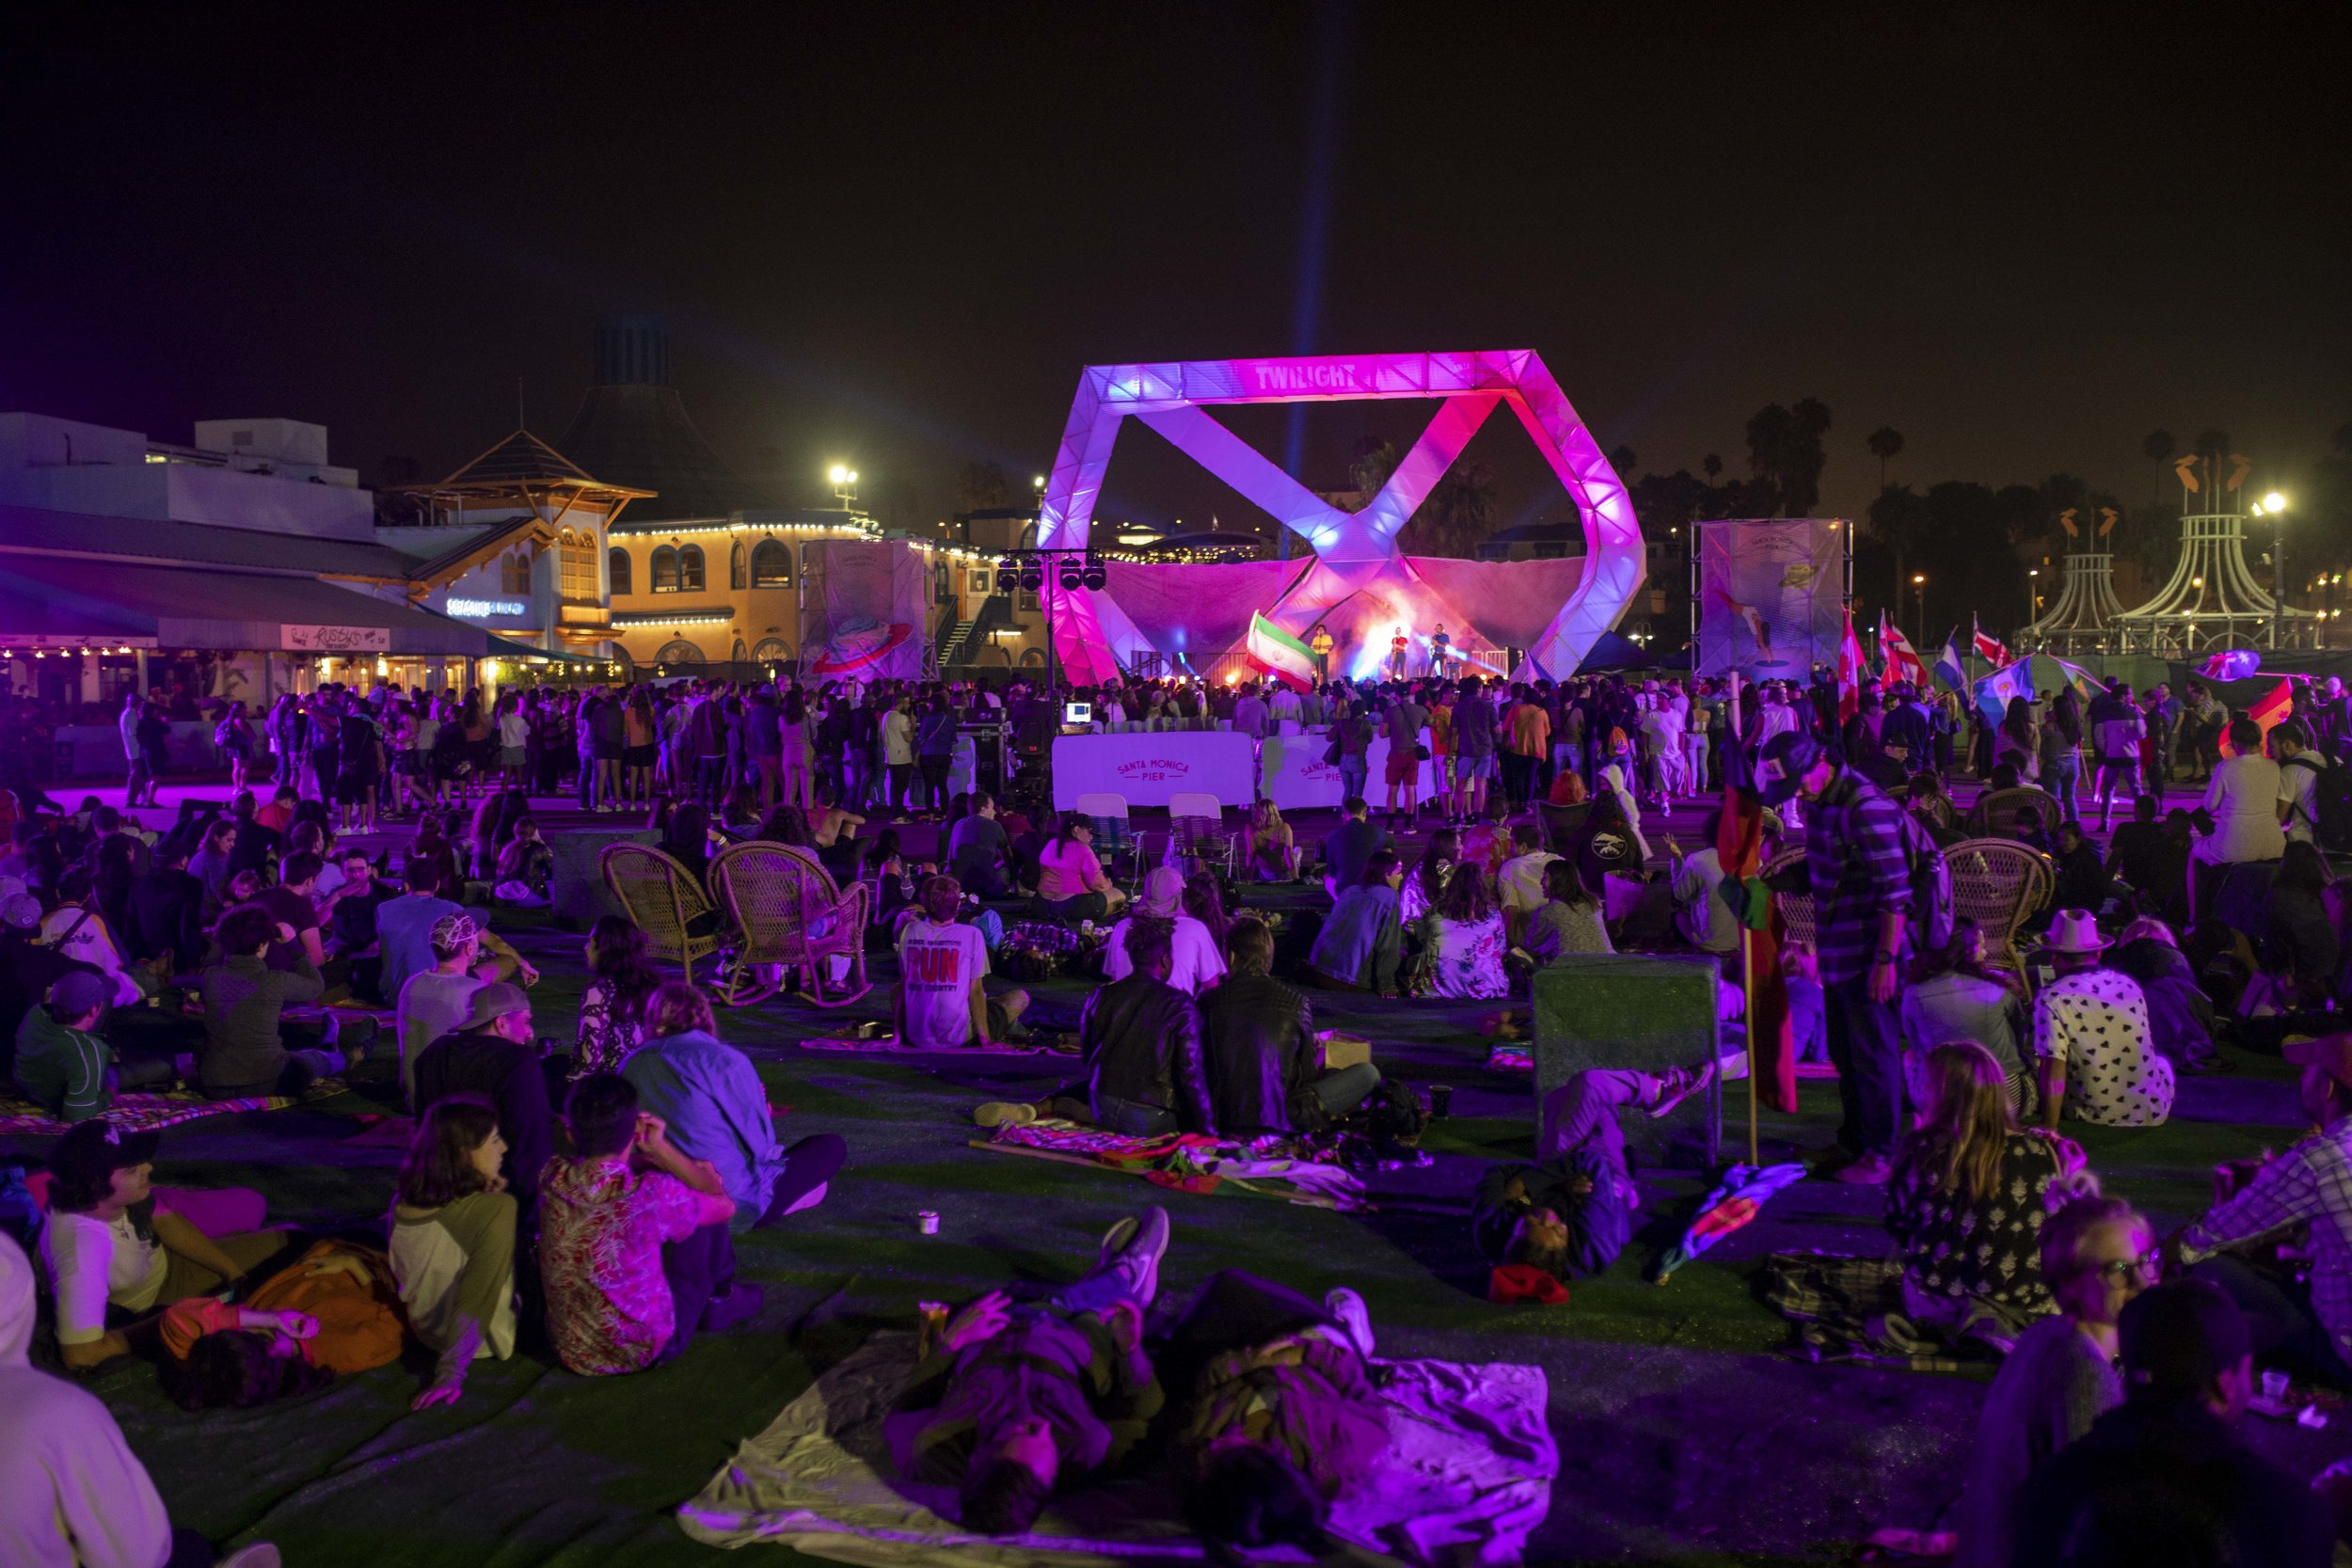 """Concert goers relax in the synthetic grass section during the """"Twilight on the Pier"""" concert series on the Santa Monica Pier in Santa Monica, California. (Josh Nicoloro/The Corsair)"""